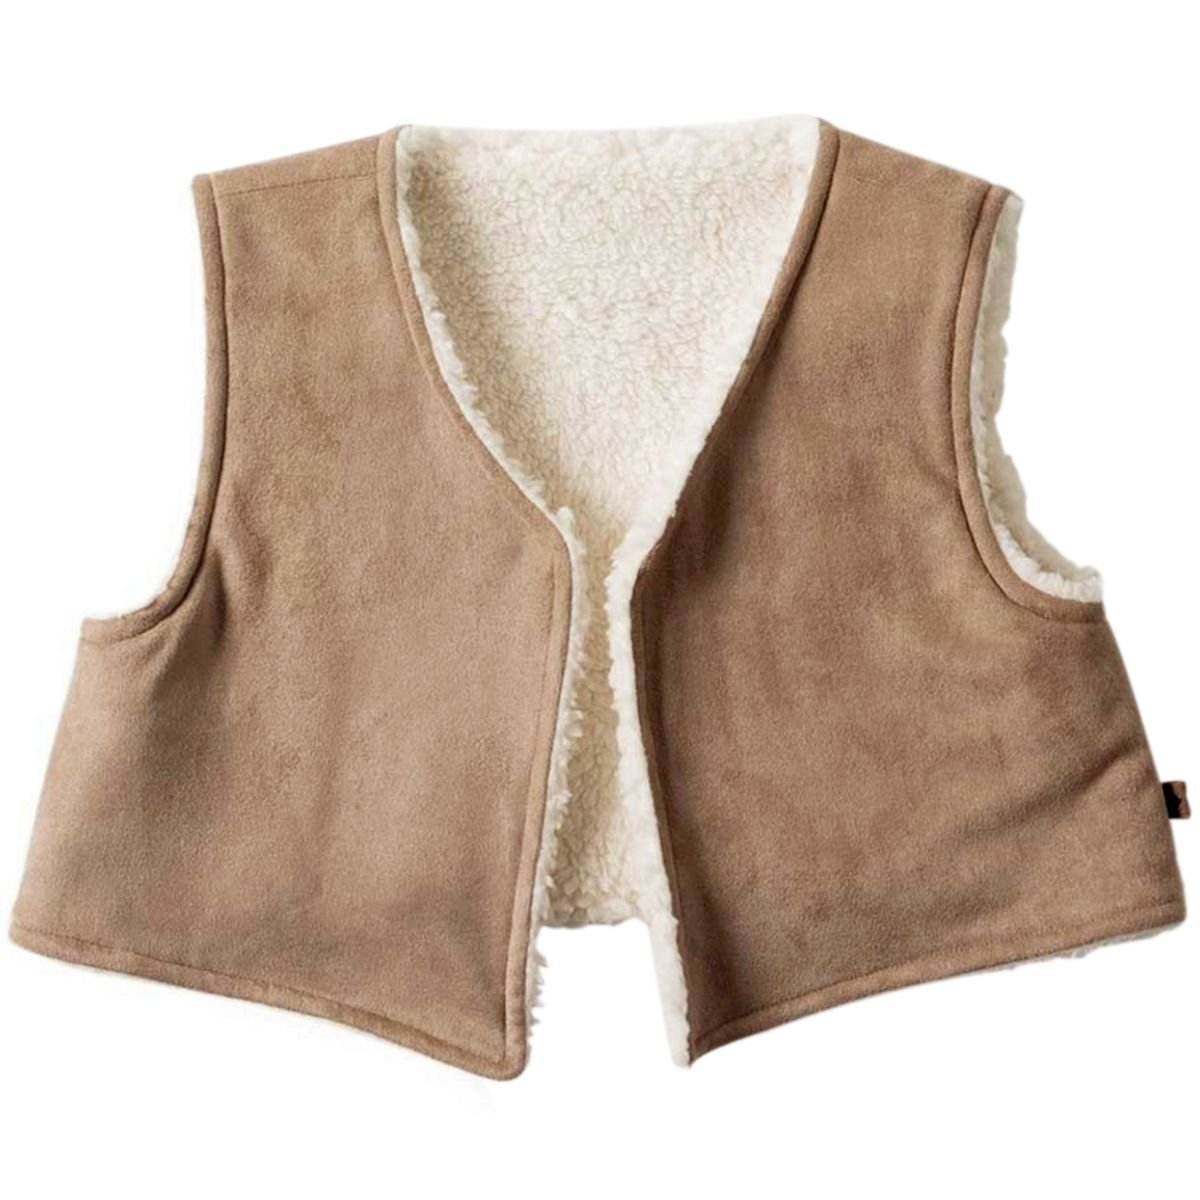 4e8d116362bf Amazon.com  Appaman Kids Womens Soft and Cozy Orchard Reversible ...